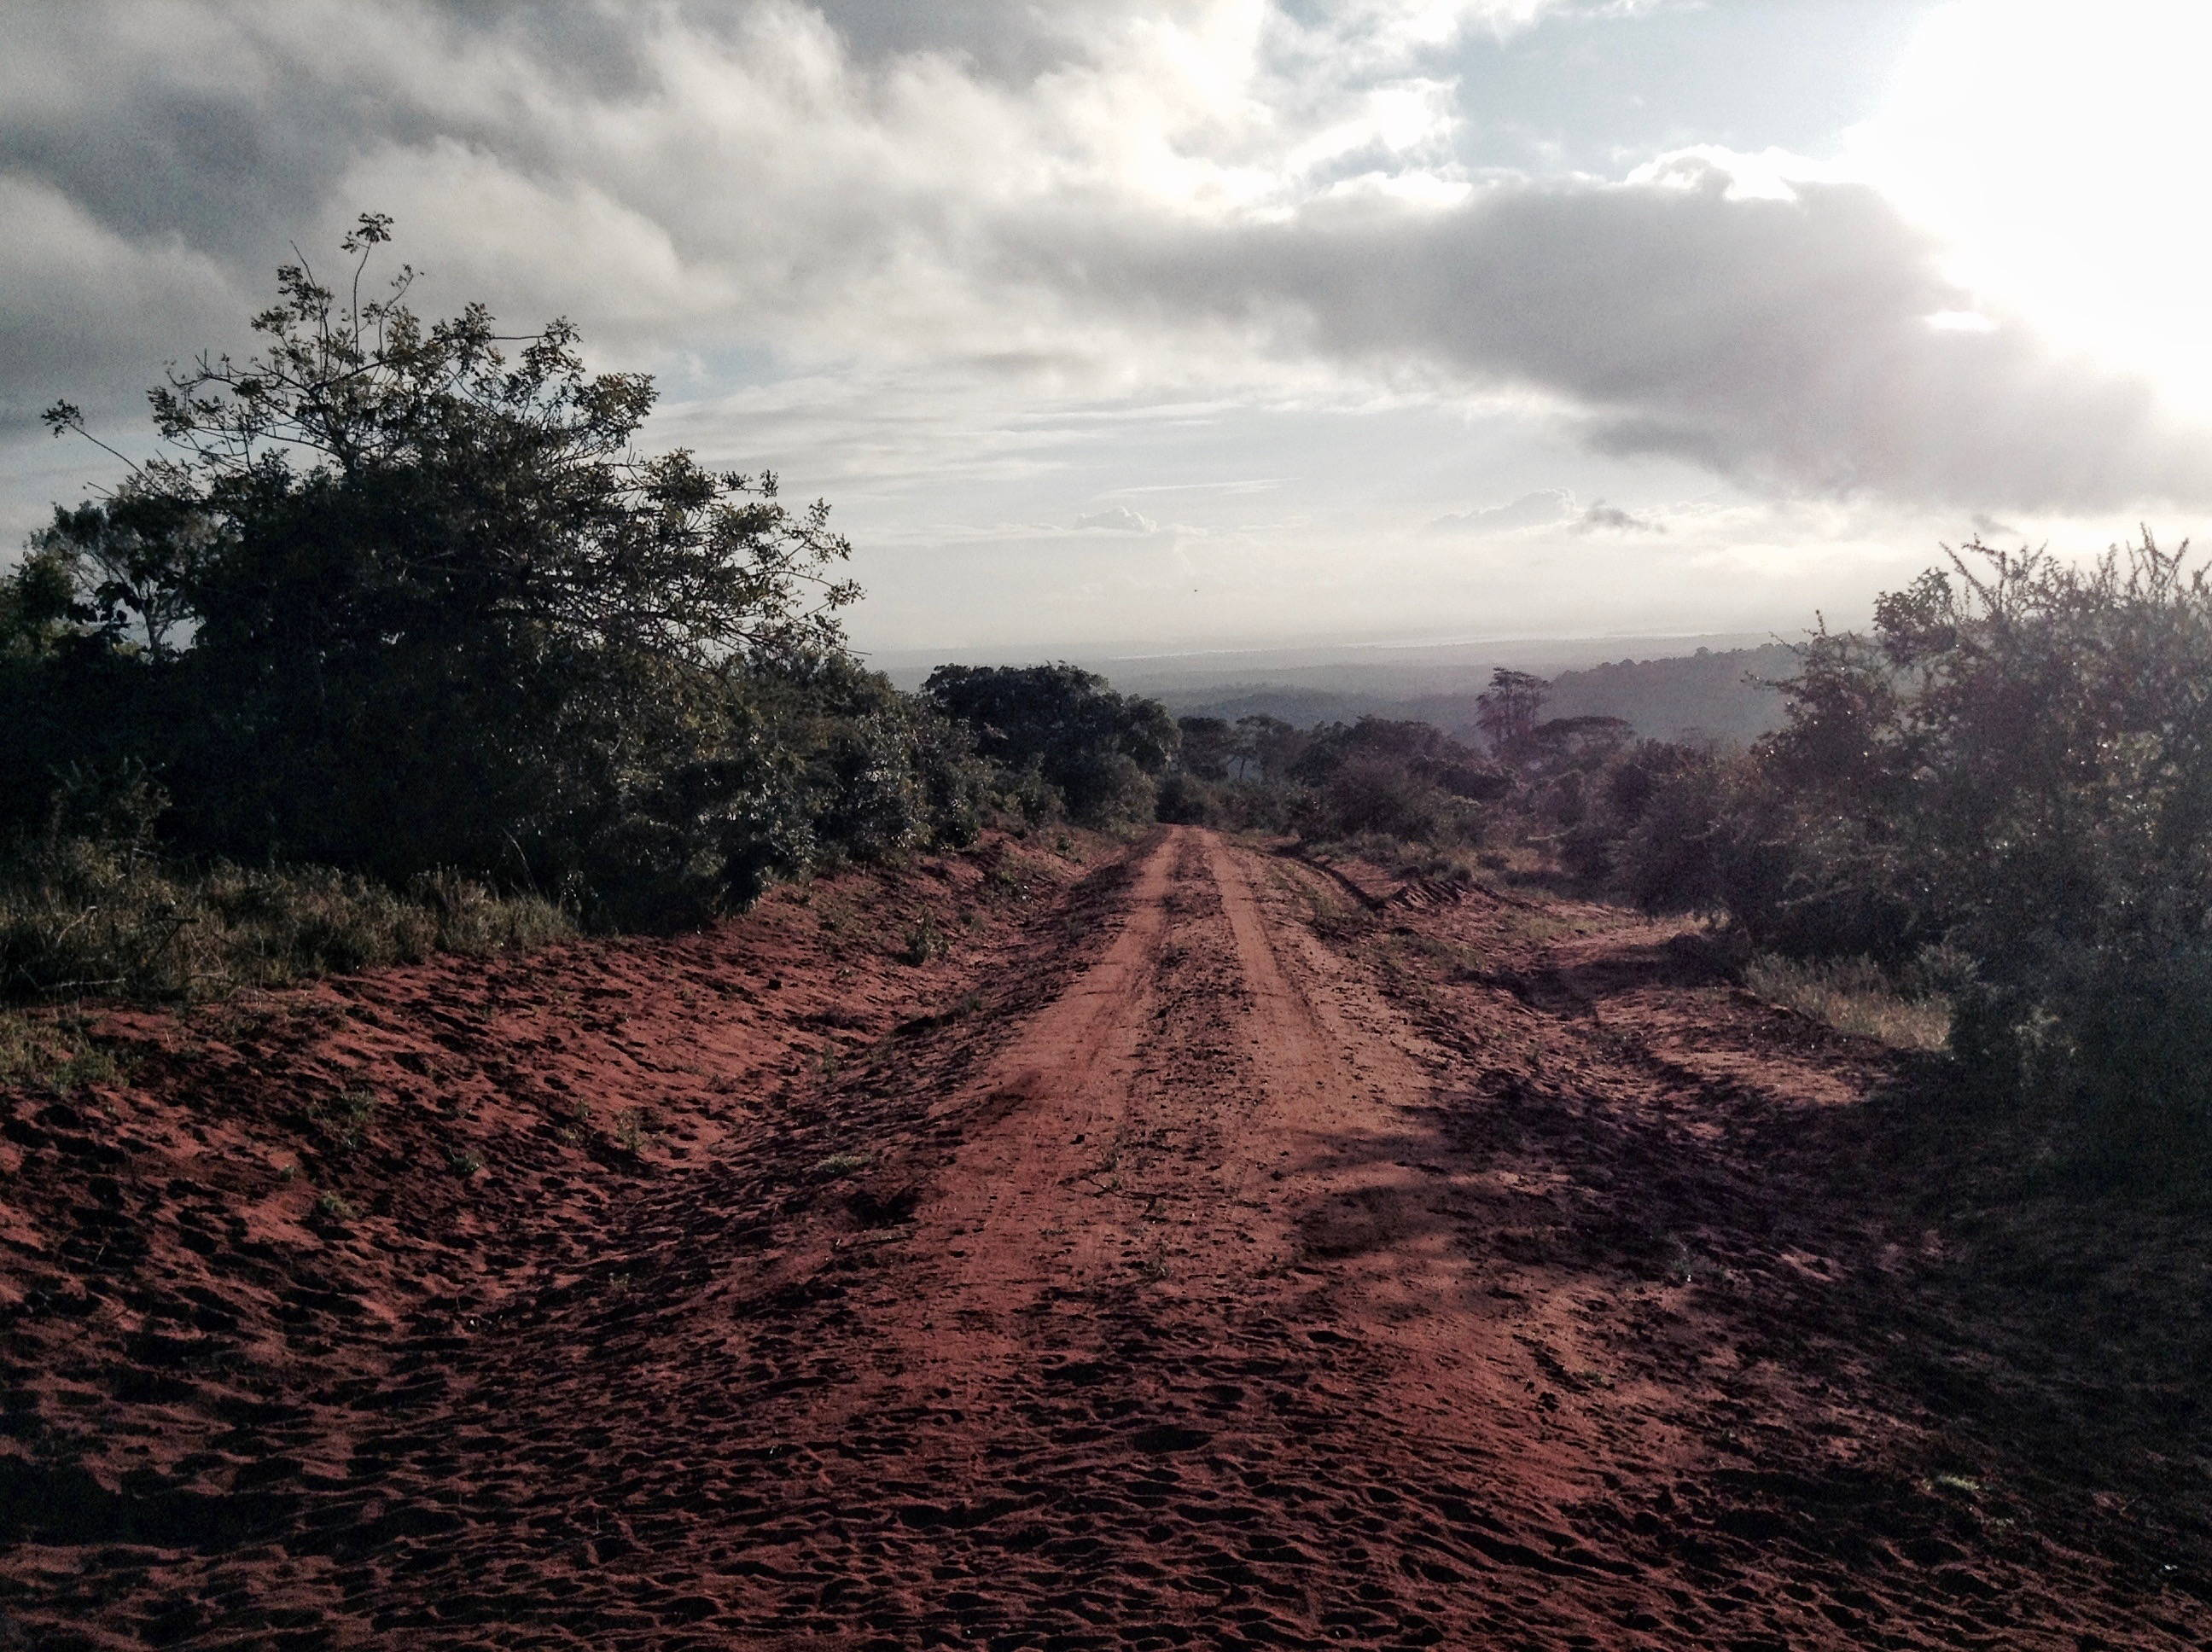 Dirt road in Shimba Hills/Kwale on the coastal ridge southwest of Mombasa with Indian Ocean inlet in the distance, photo by author.